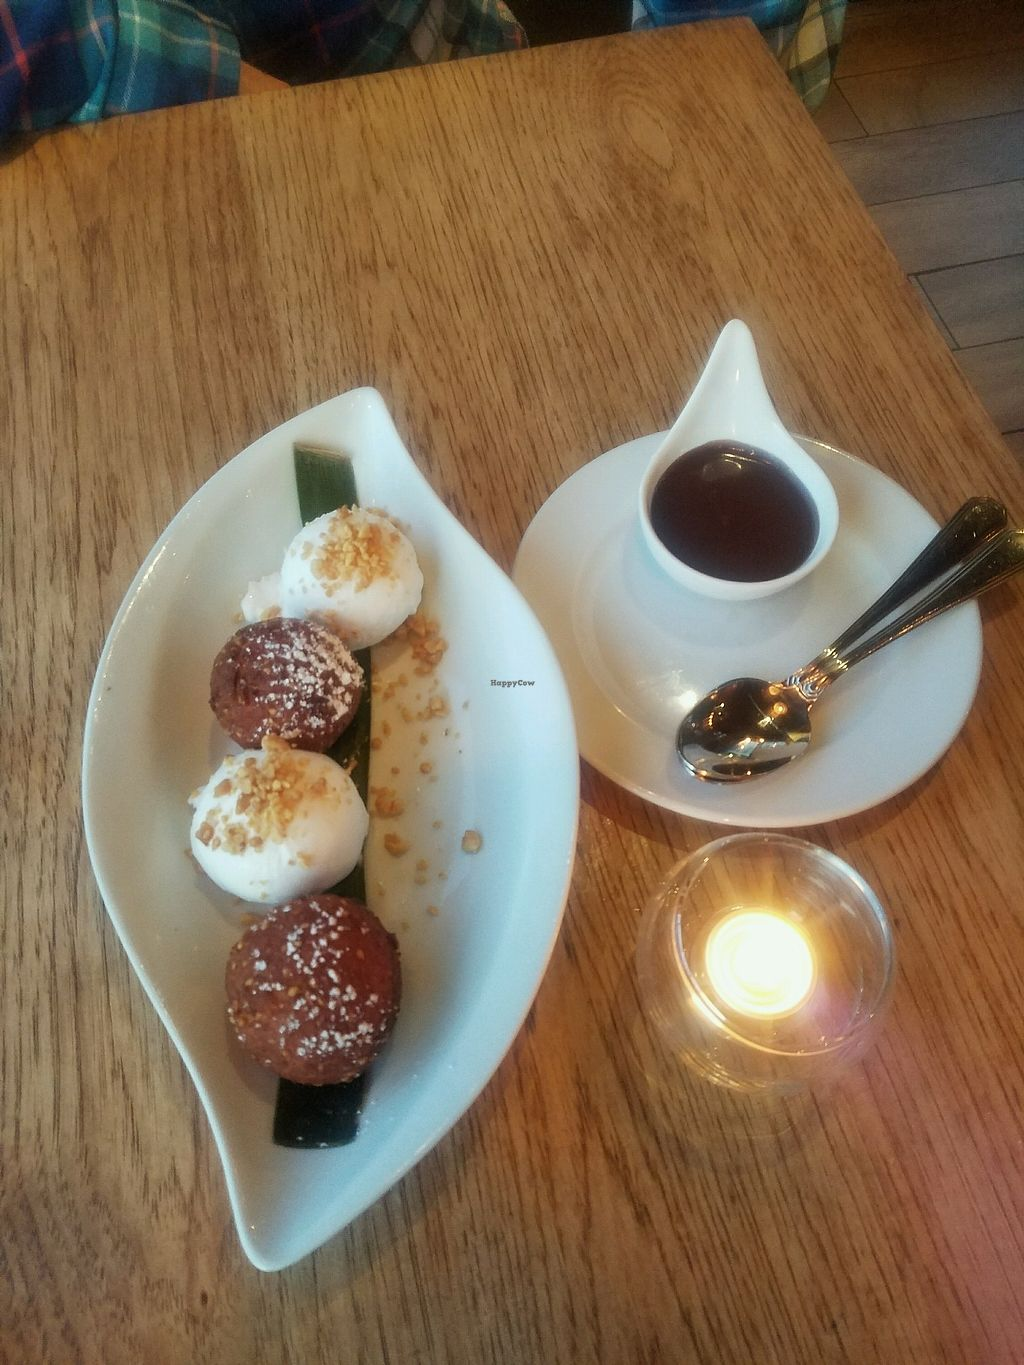 "Photo of Green Elephant Vegetarian Bistro & Bar  by <a href=""/members/profile/ehubert"">ehubert</a> <br/>Fried banana with coconut ice cream and chocolate drizzle  <br/> November 2, 2017  - <a href='/contact/abuse/image/64198/321285'>Report</a>"